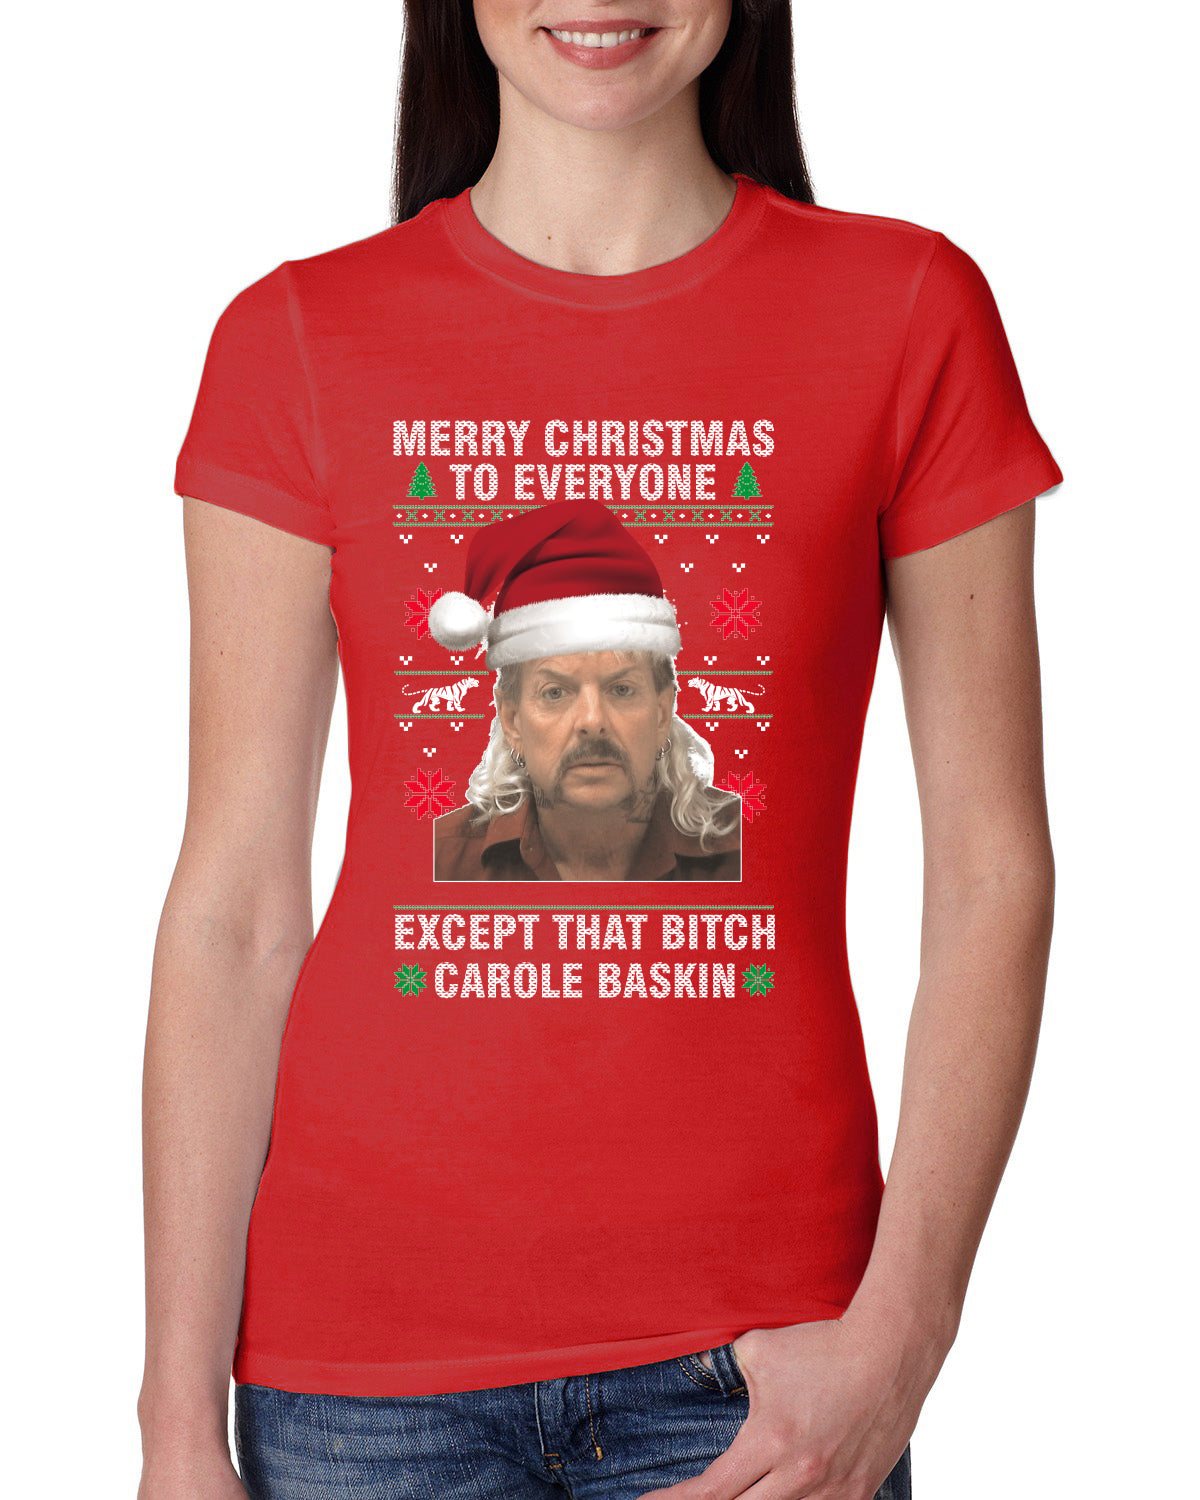 Merry Christmas to Everyone Except Carole Baskin Ugly Christmas Sweater Womens Slim Fit Junior Tee